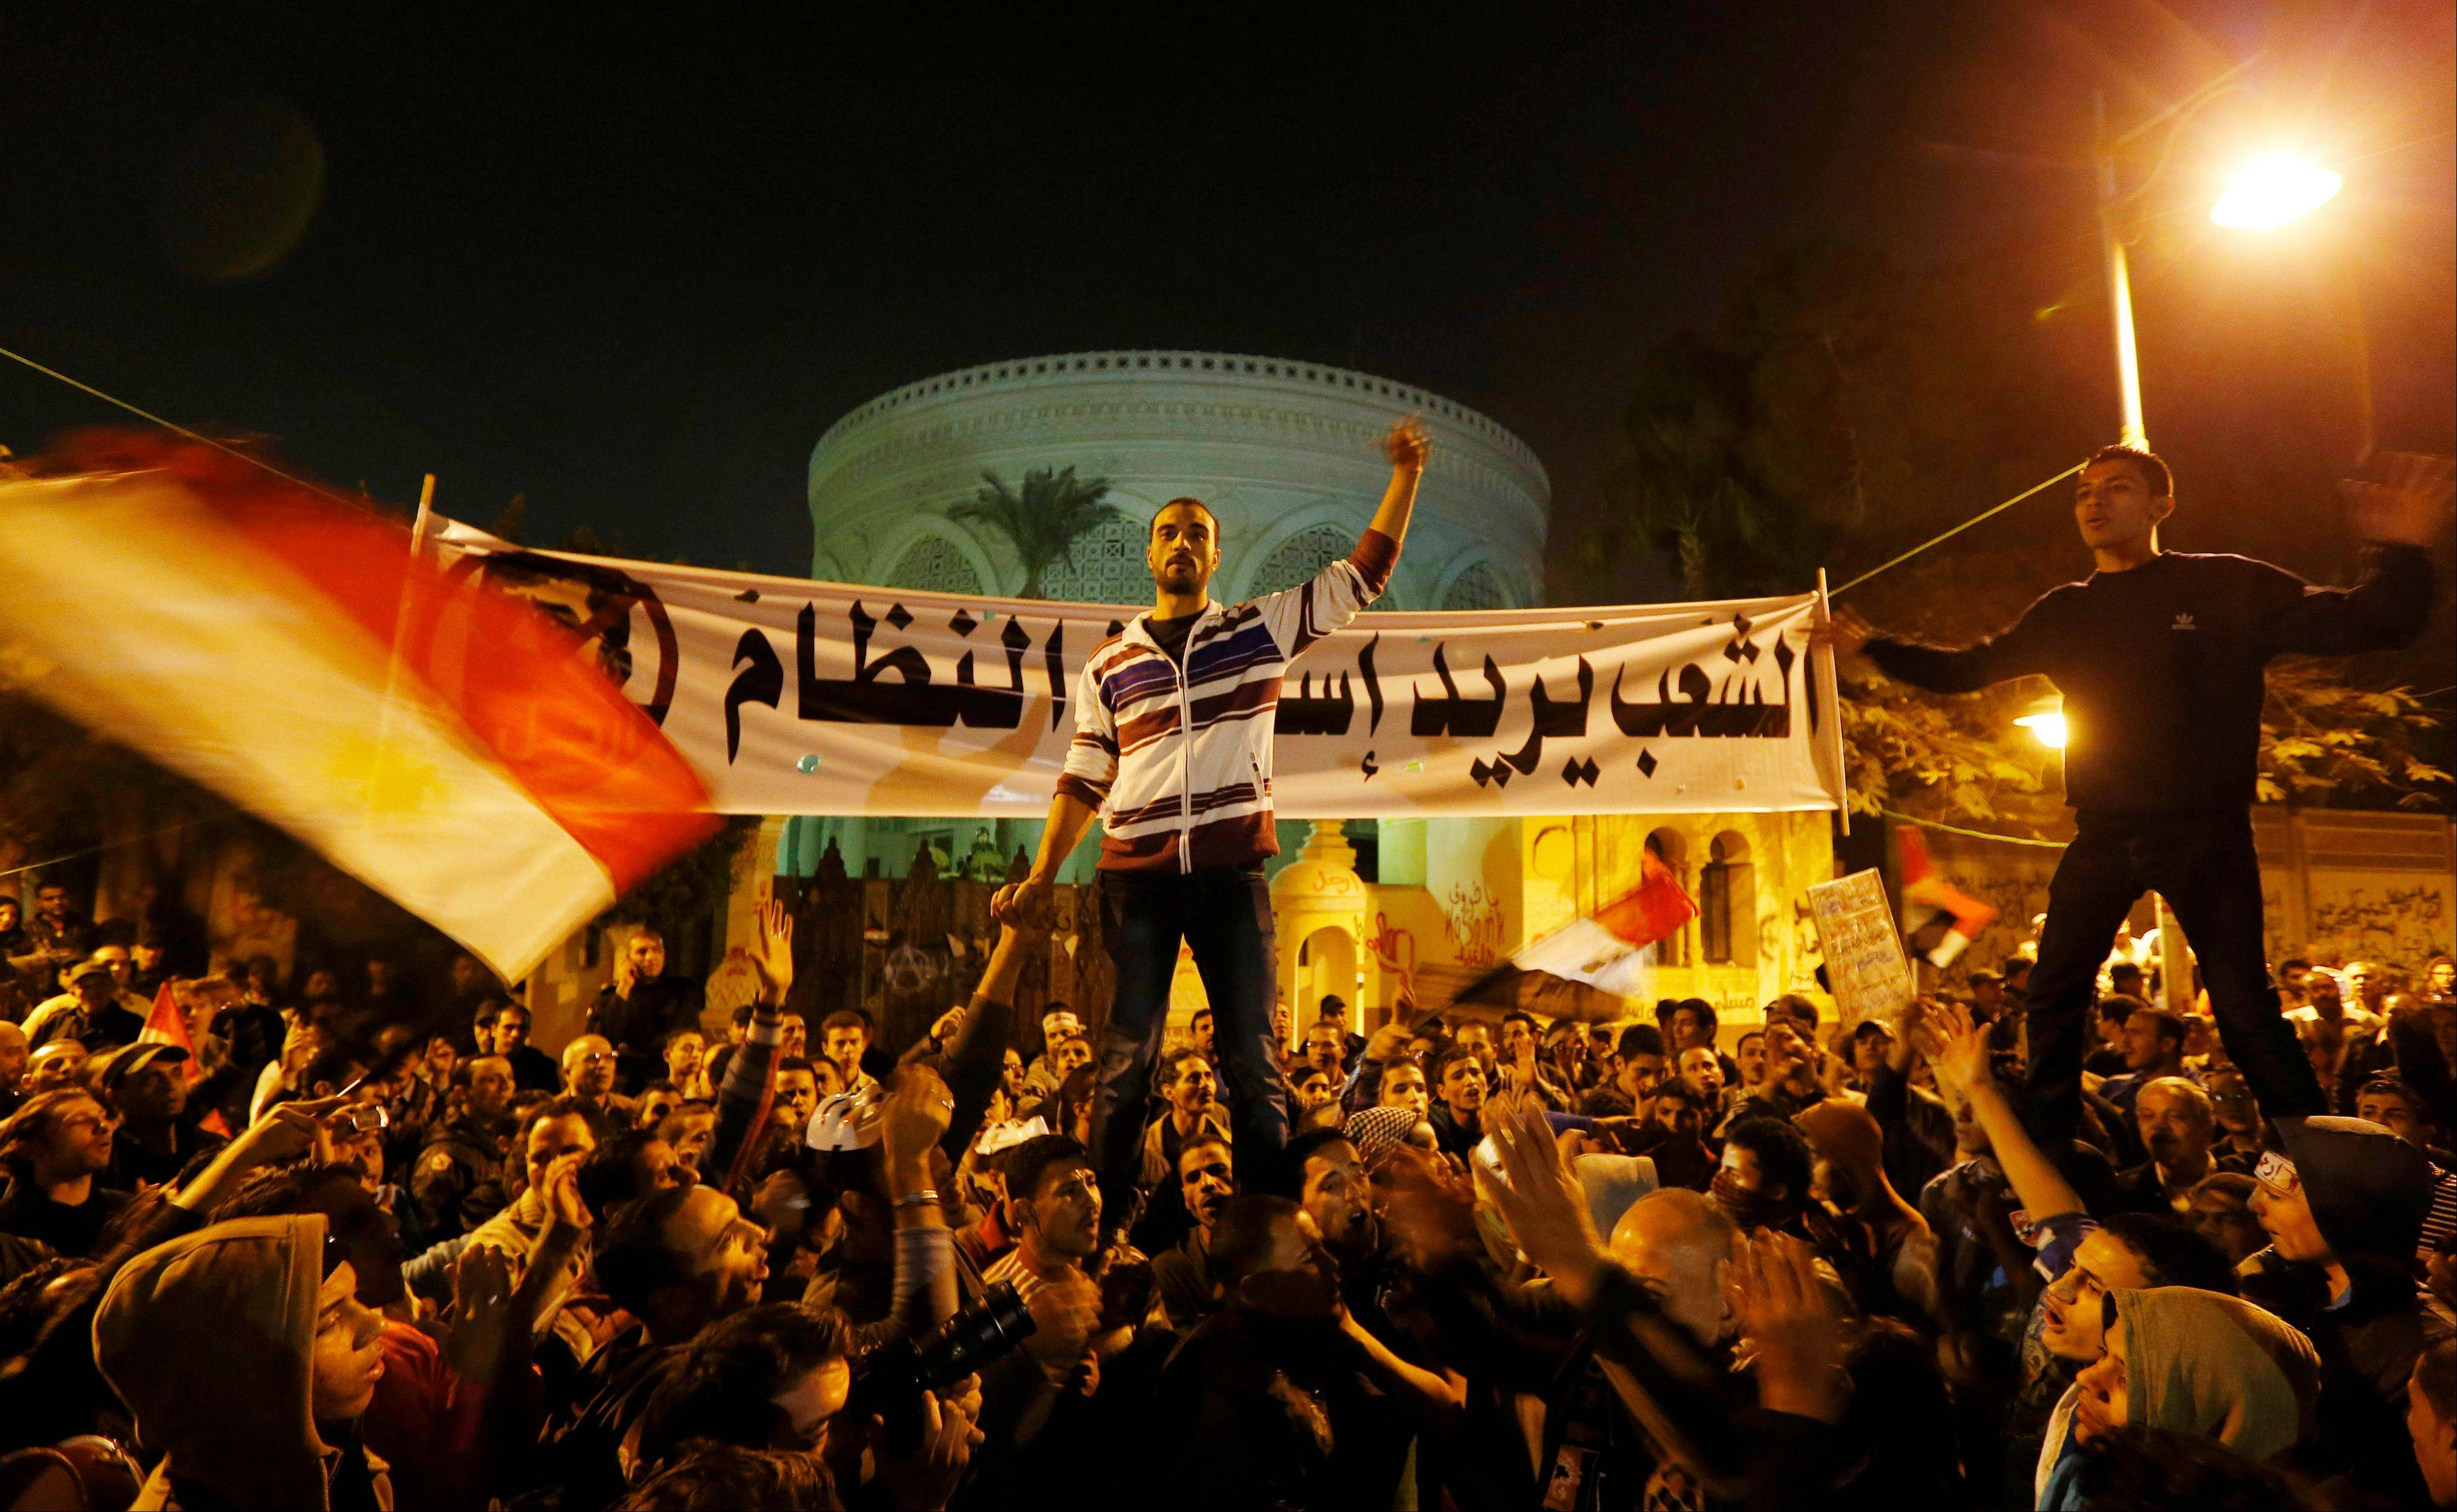 Protesters chant slogans during a demonstration in front of the presidential palace in Cairo on Egypt Sunday. Egypt�s liberal opposition called for more protests Sunday.